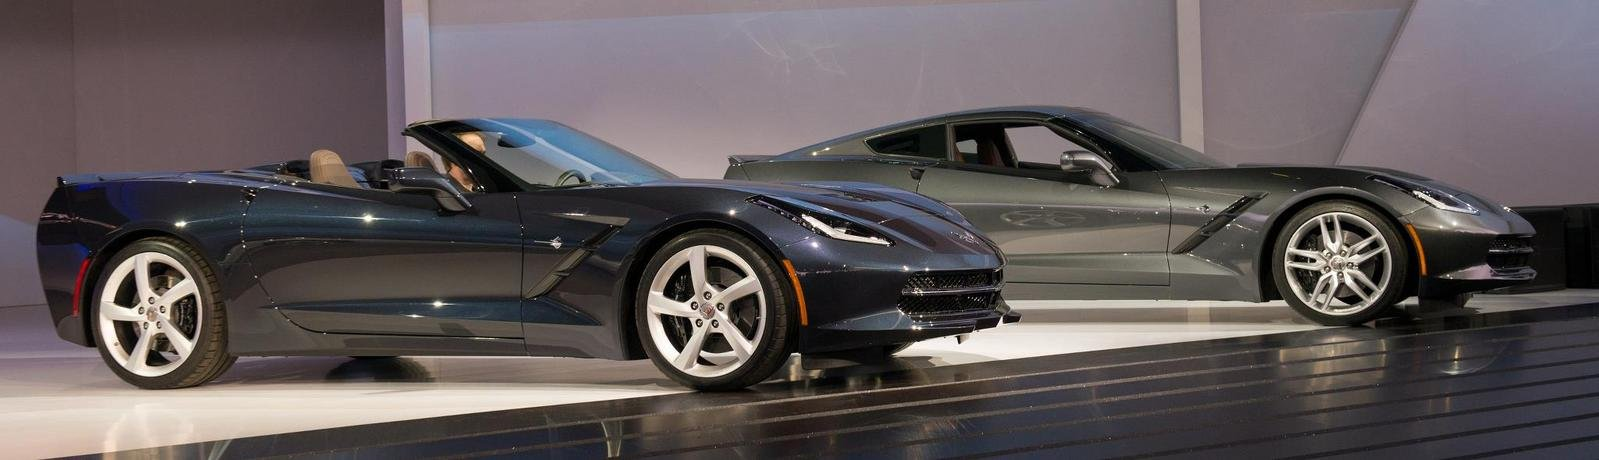 chevrolet corvette stingray picture 500398 car review top speed. Cars Review. Best American Auto & Cars Review